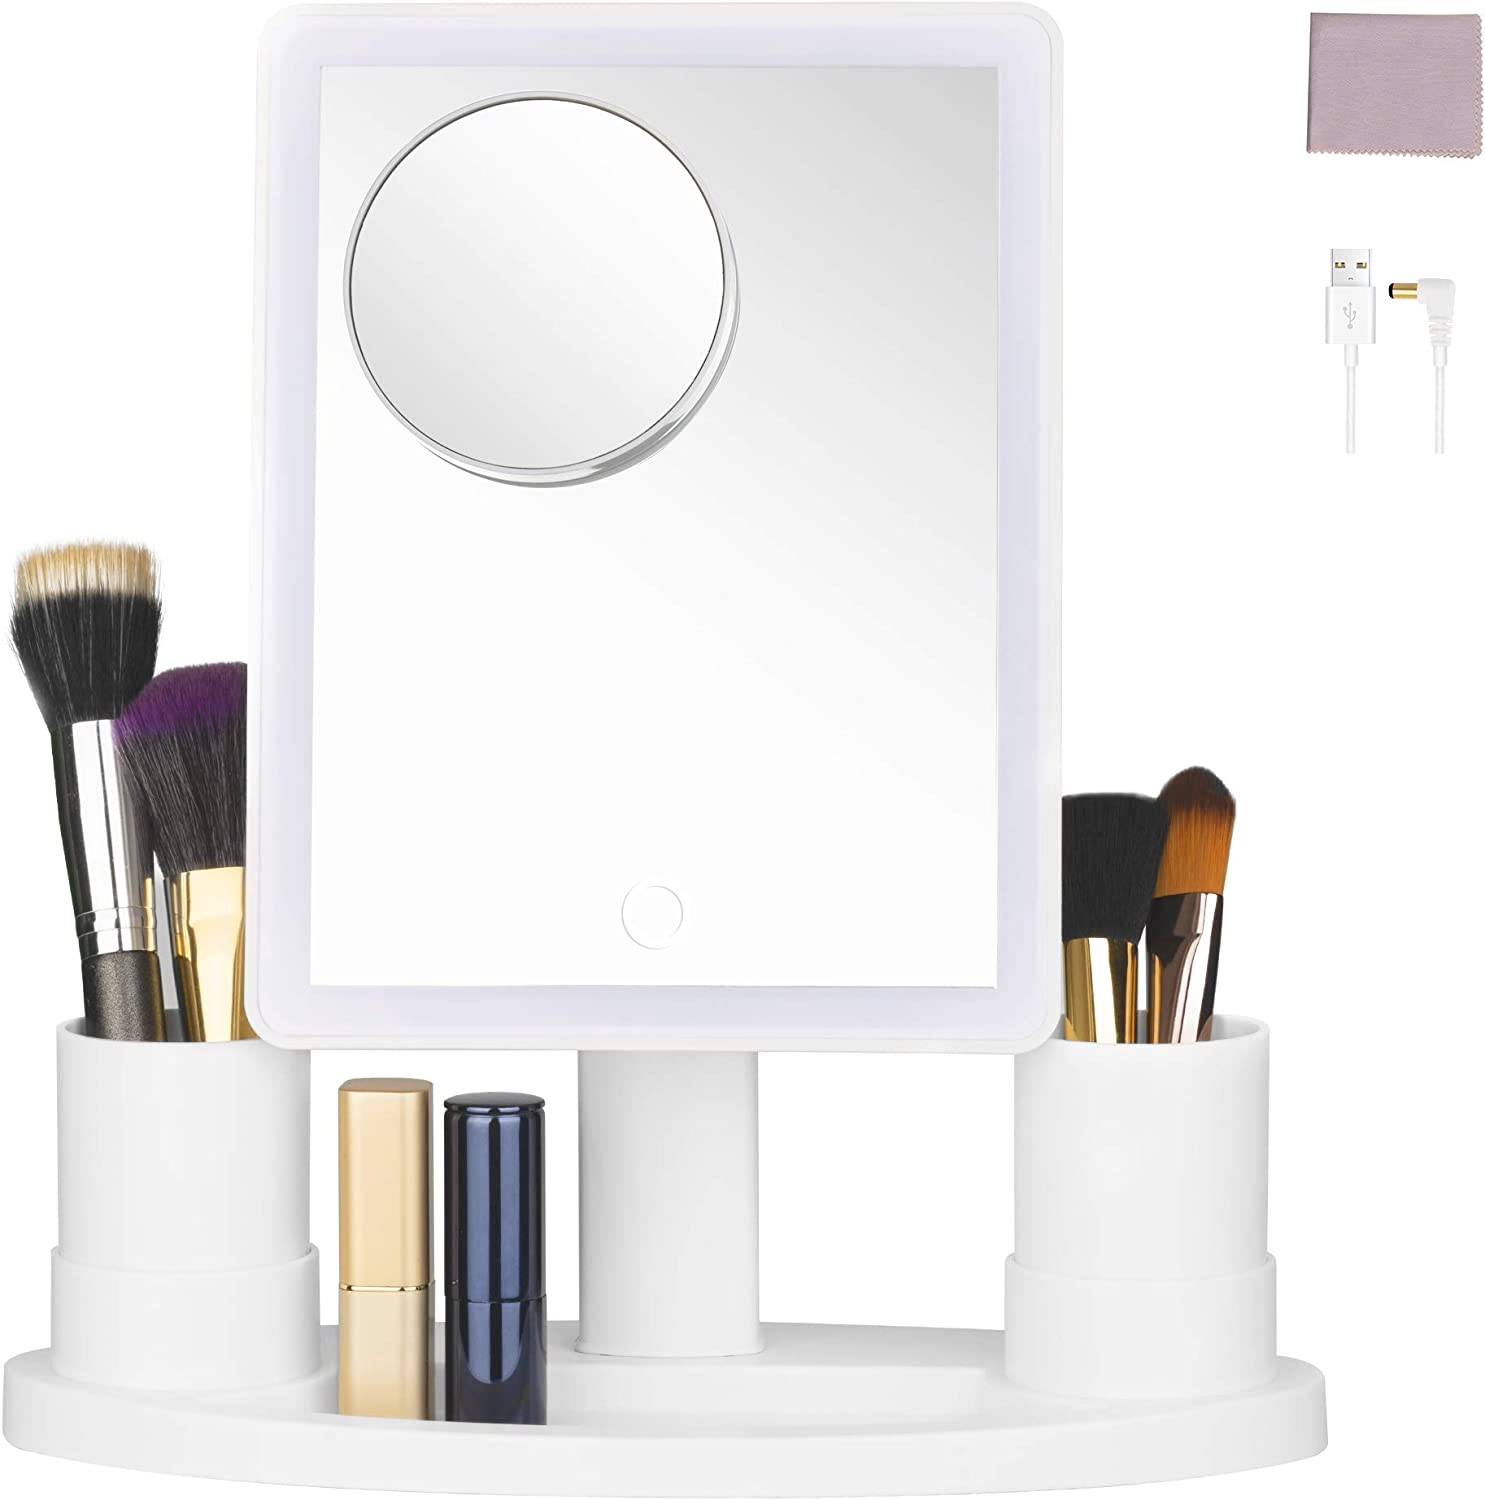 Makeup Mirror with Lights, Lighted Makeup Vanity Mirror with 10X Magnification and CosmeticBrush Organizer, Dimmable Natural Light, Dual Power Supply